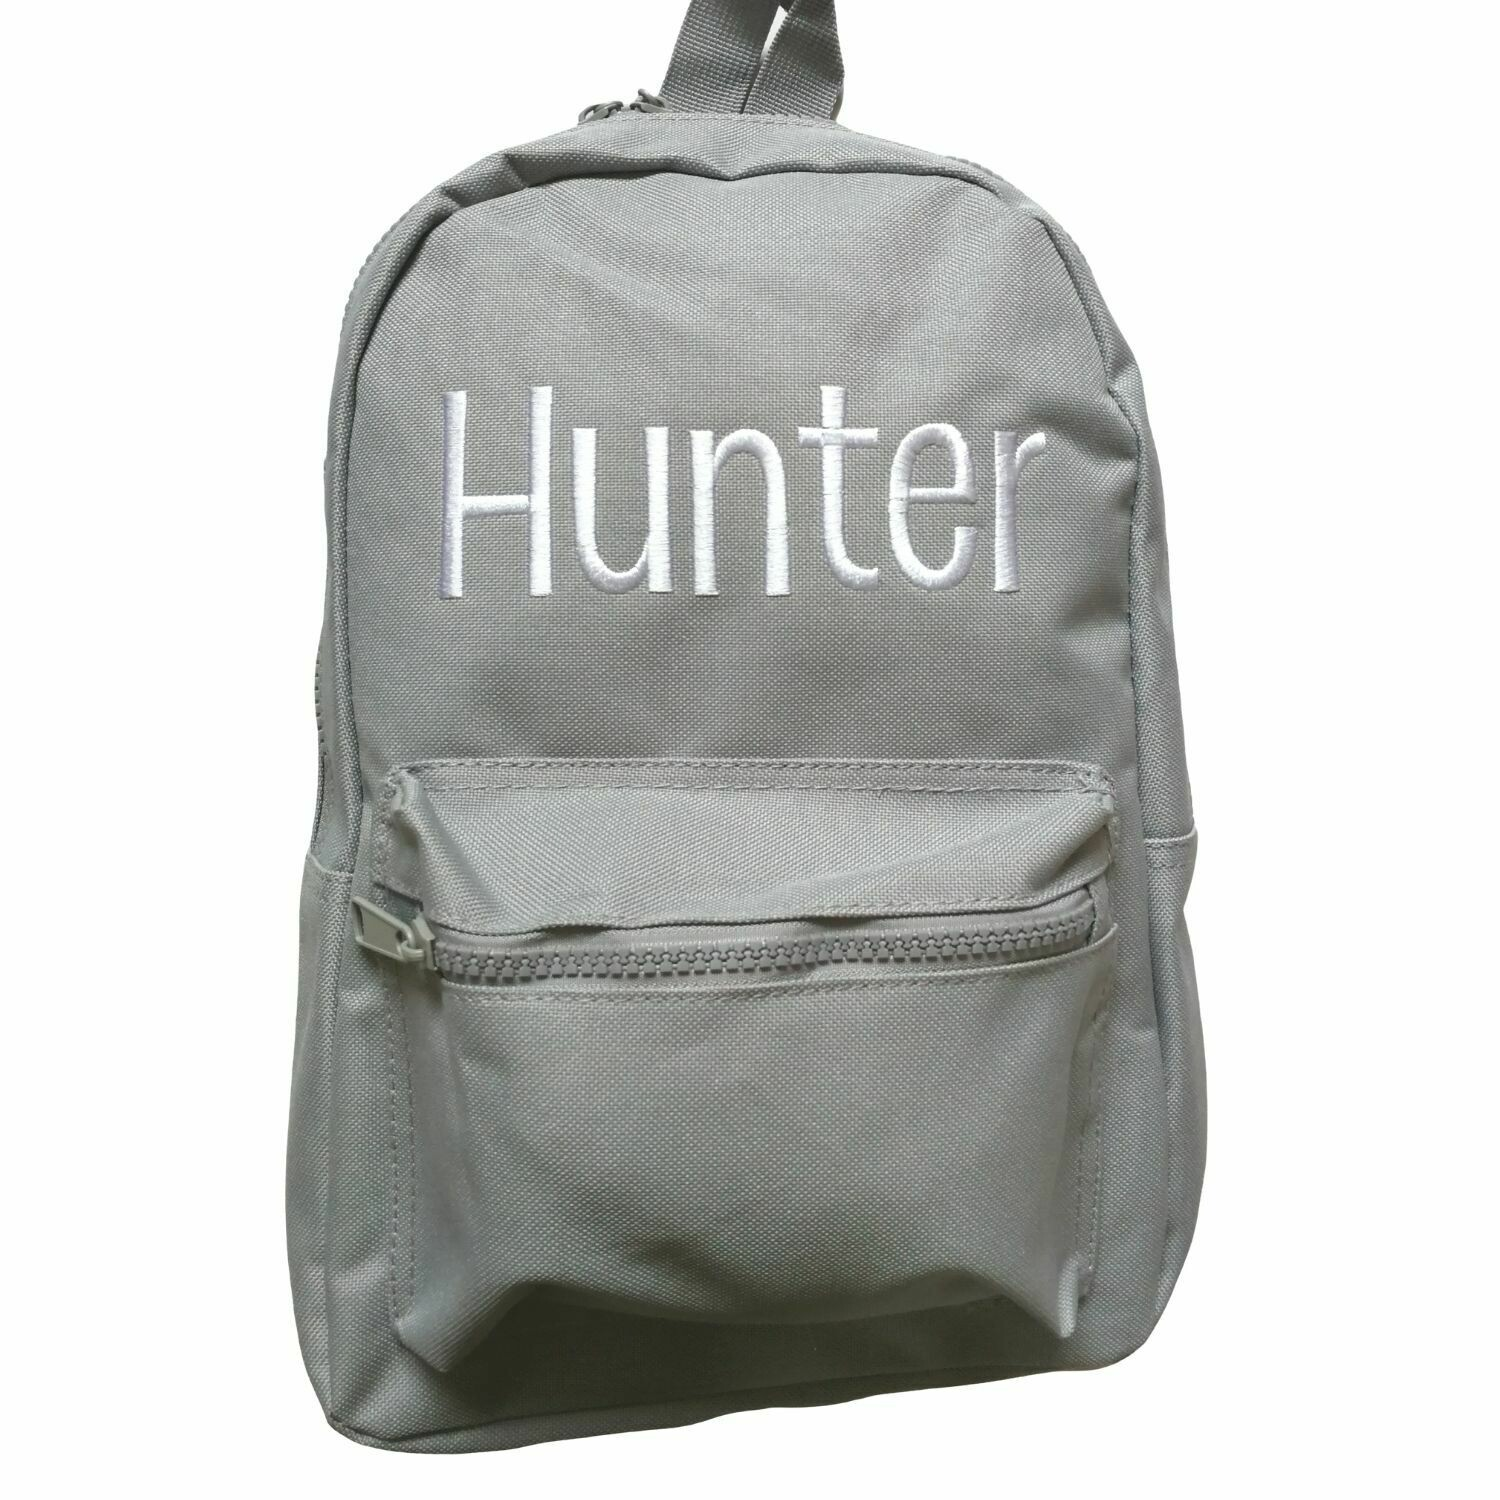 Children's Personalised Backpack Embroidered Grey